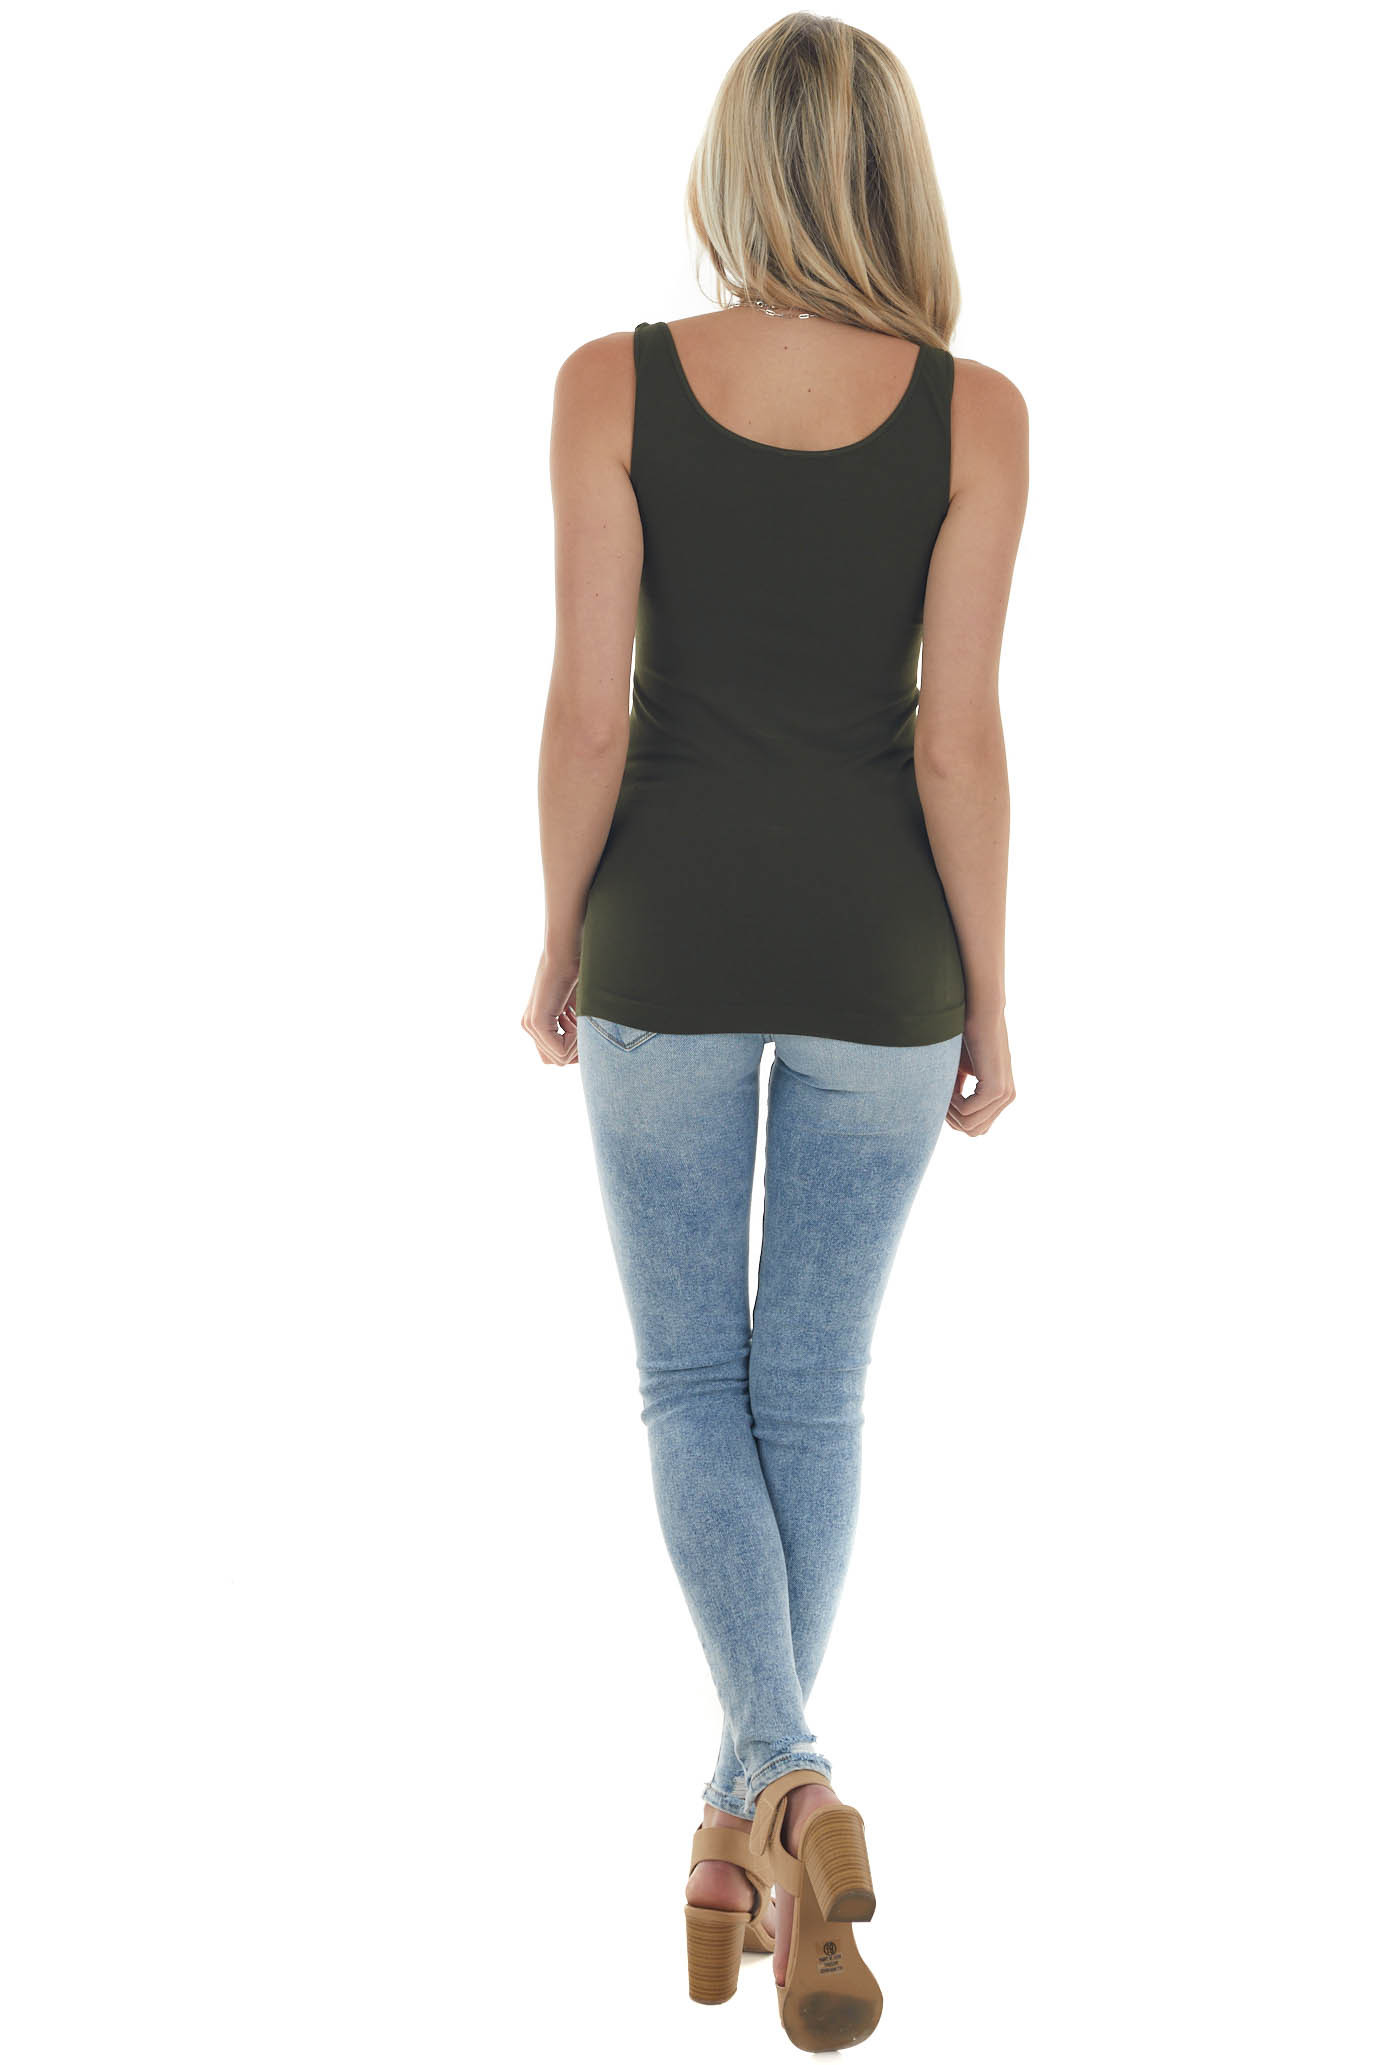 Olive Green Seamless Long Tank Top